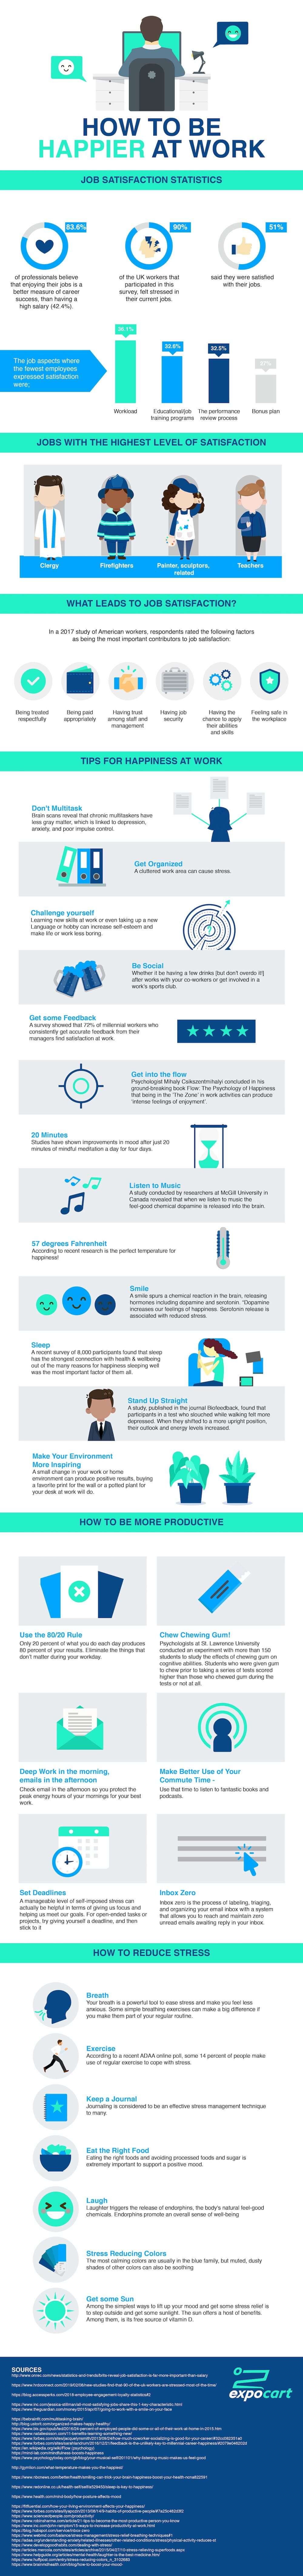 Top Tips on Work Happiness, Productivity Hacks inforgraphic